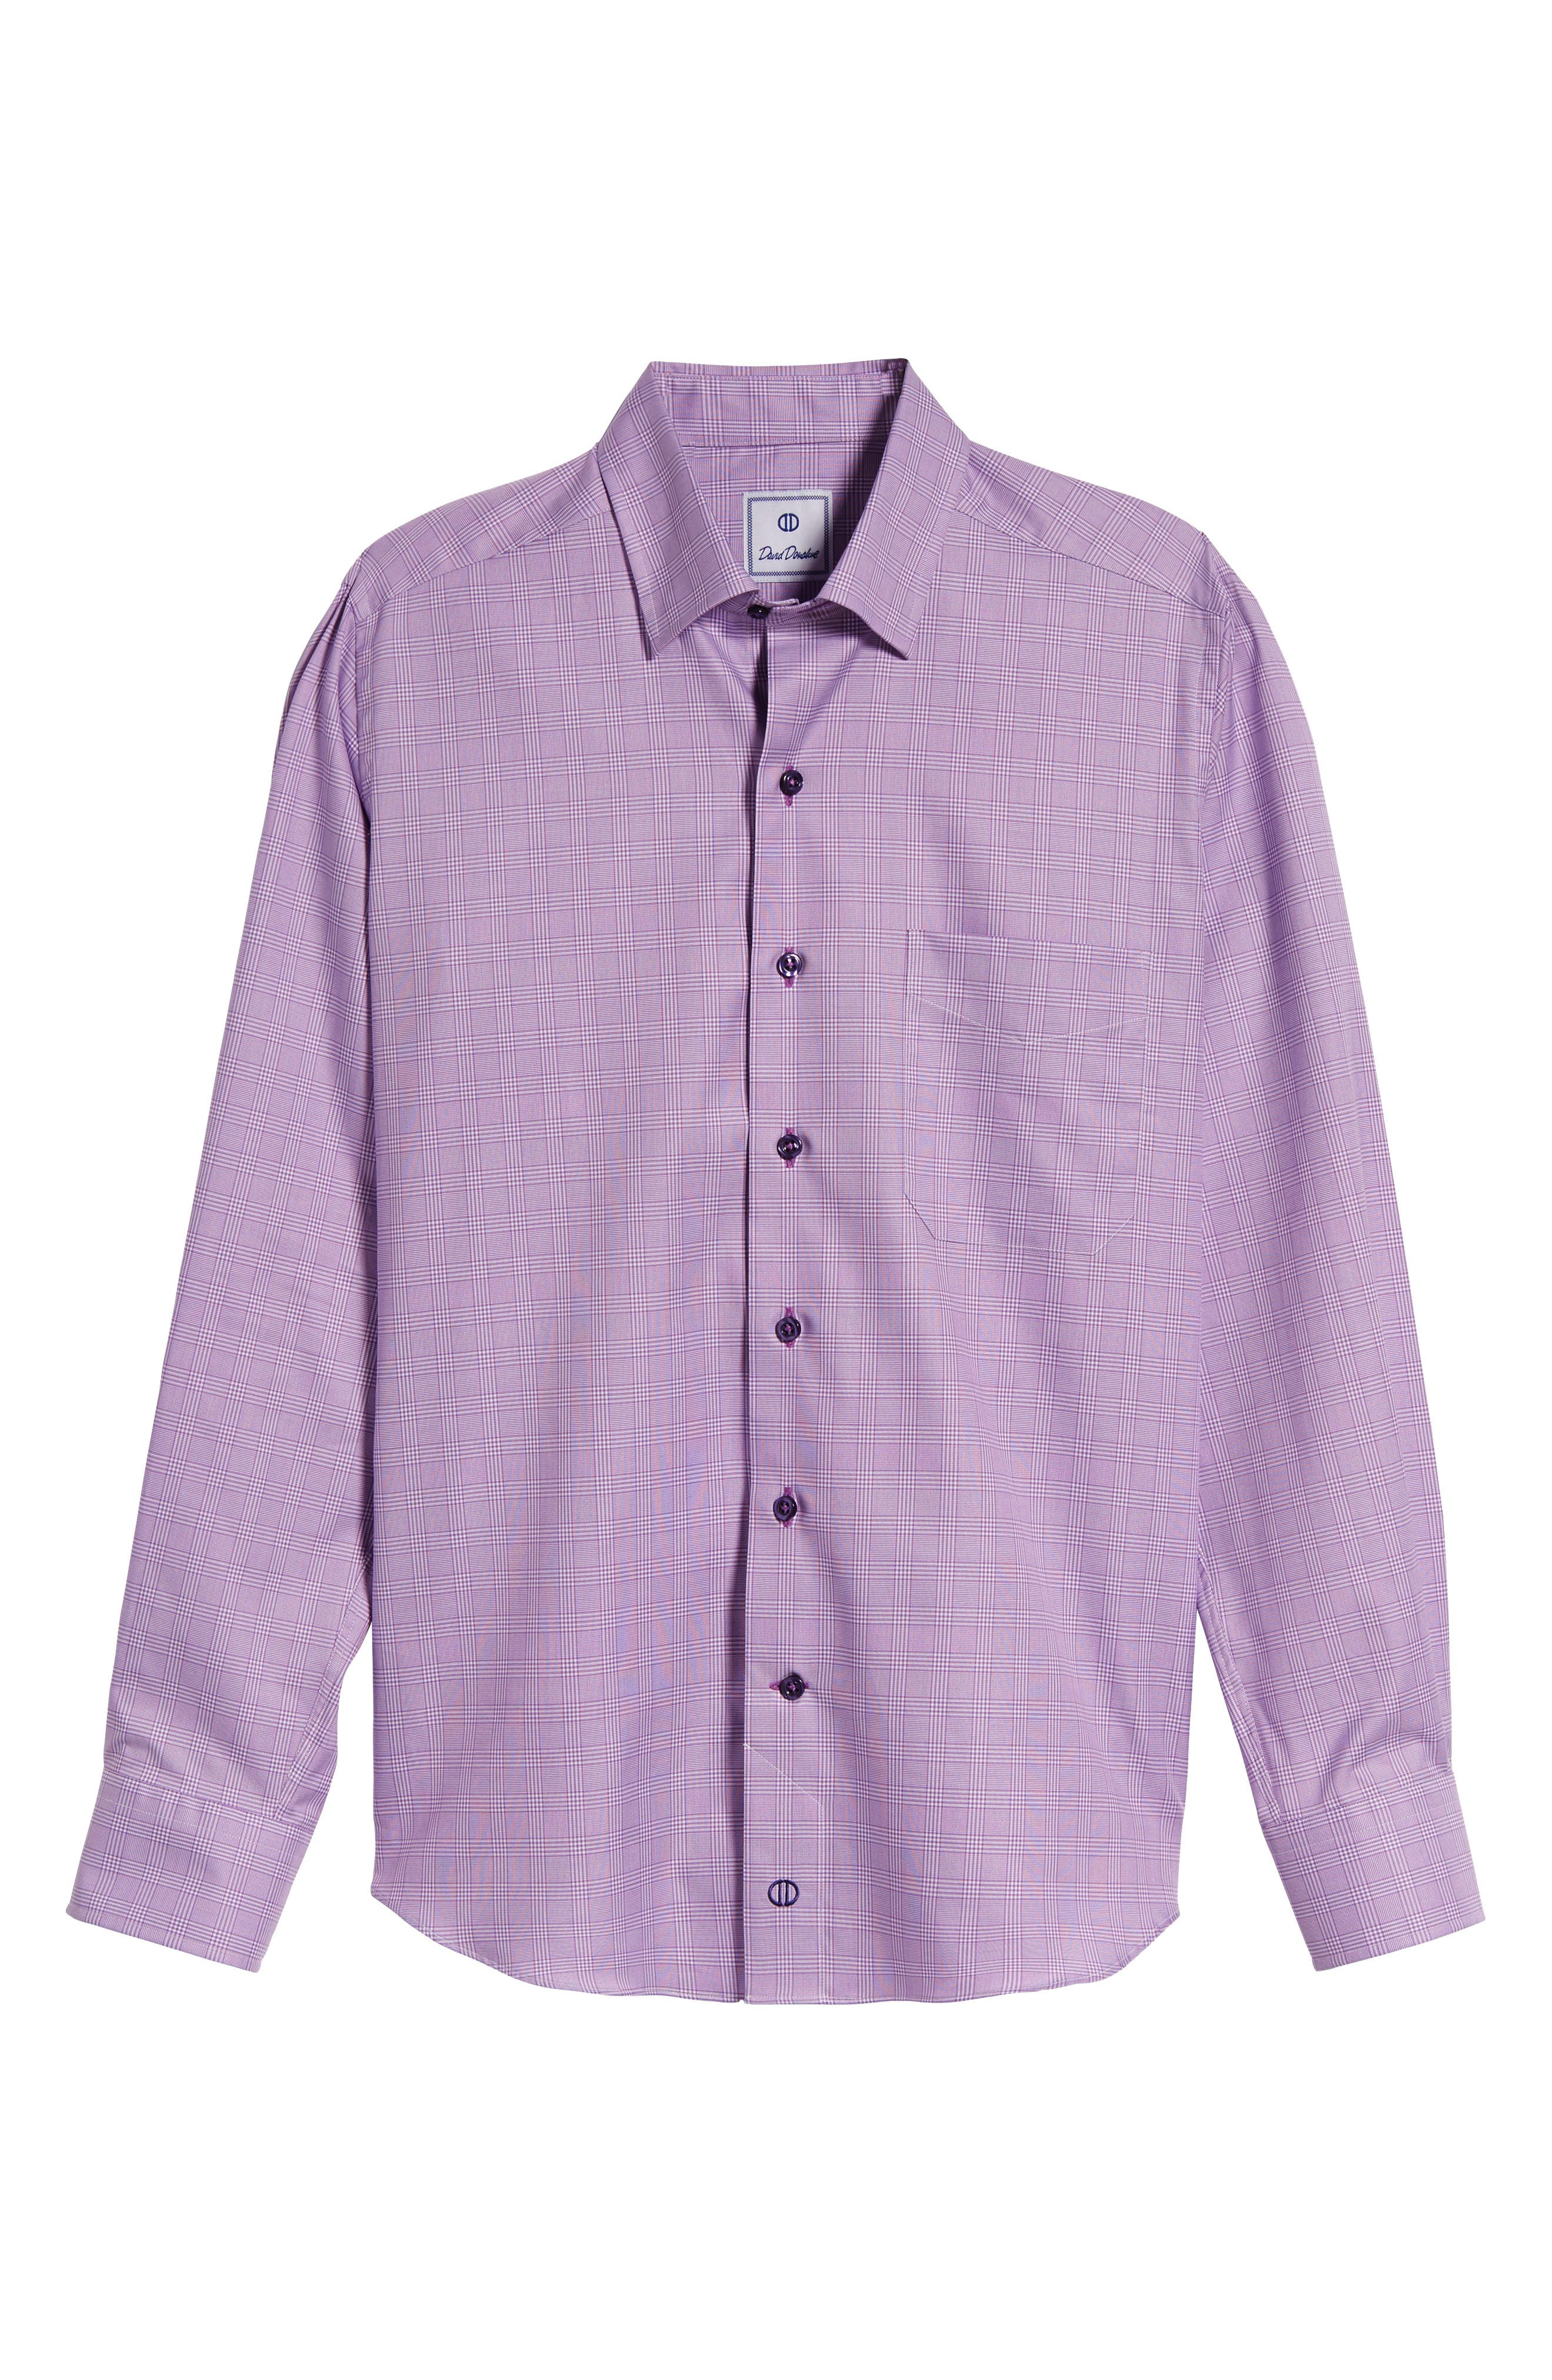 Regular Fit Plaid Sport Shirt,                             Alternate thumbnail 6, color,                             Lilac